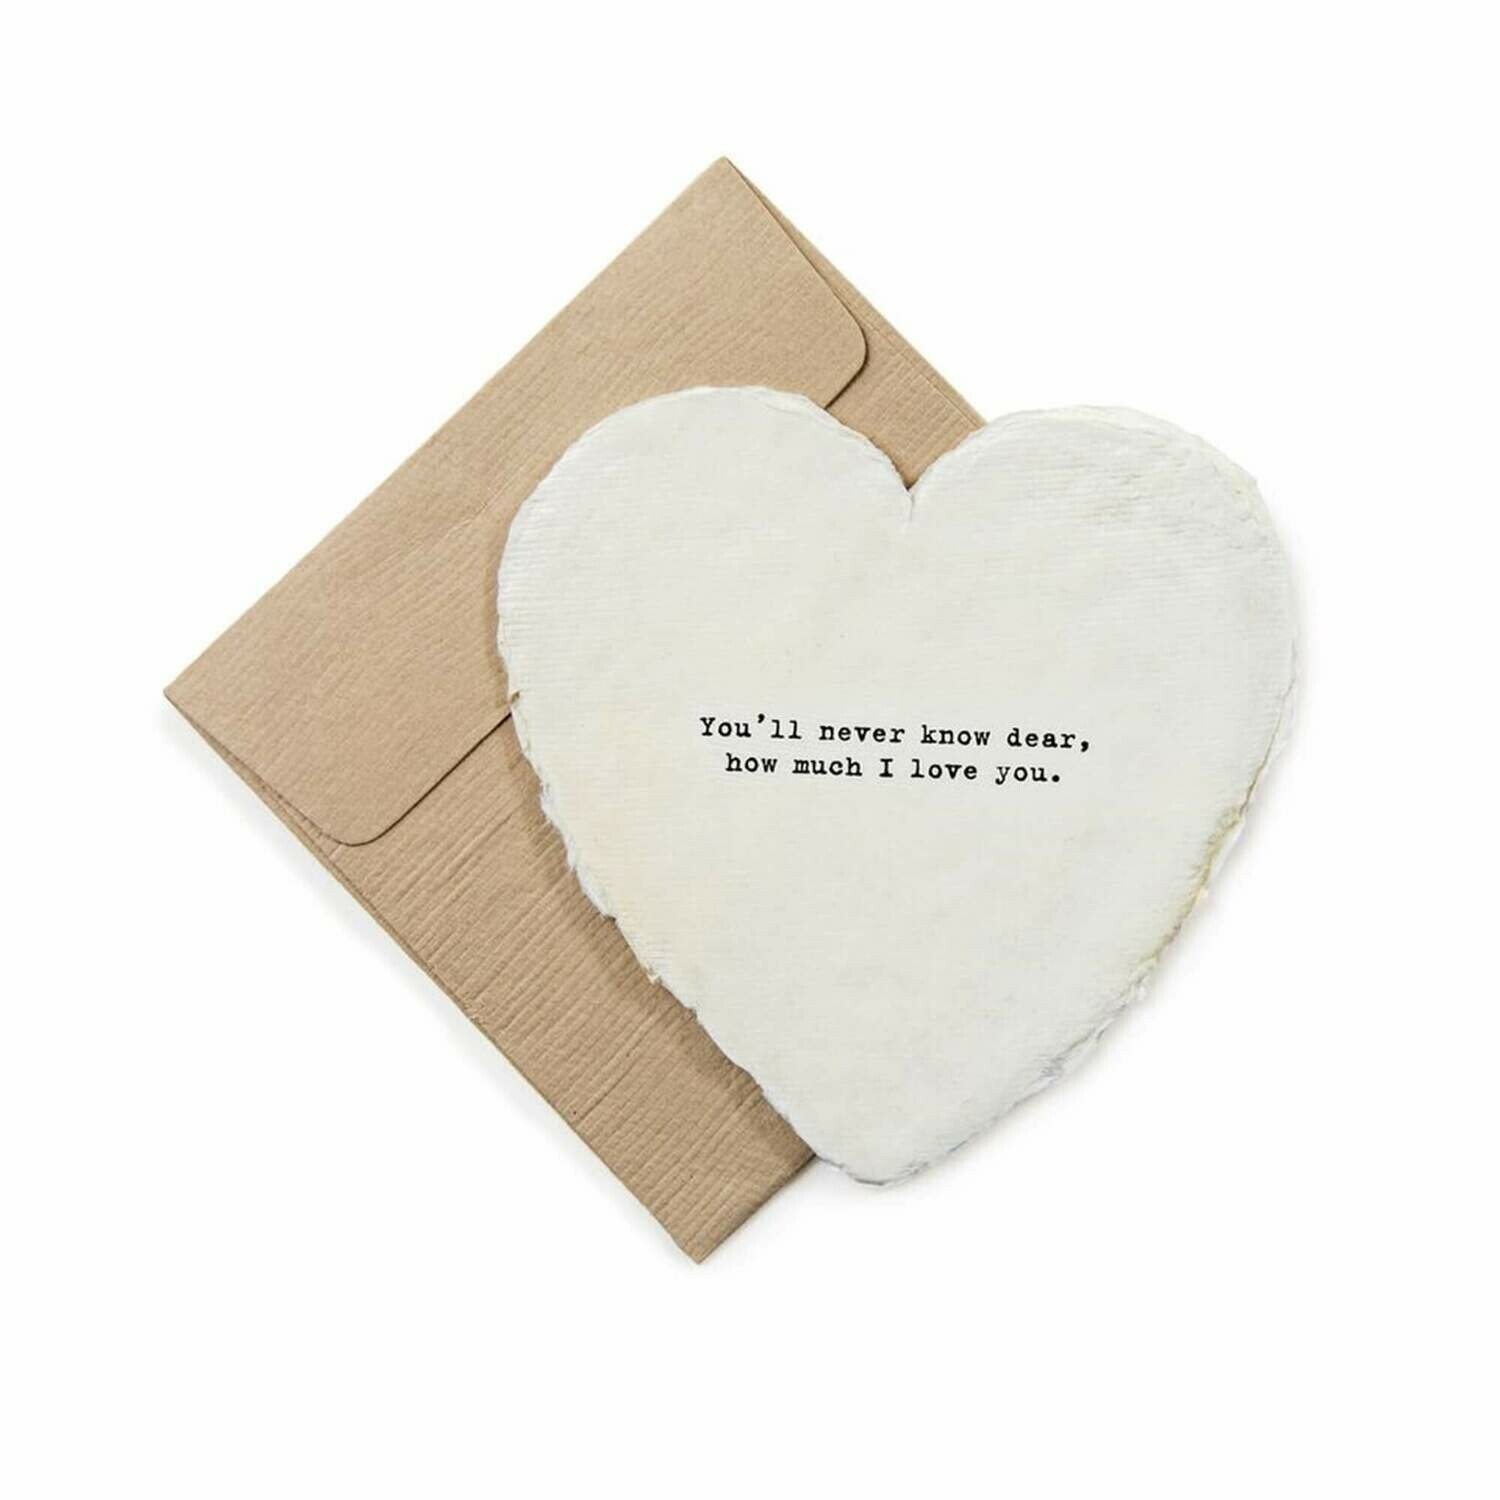 Mini Heart Shaped Card &  Envelope-You'll never know dear,